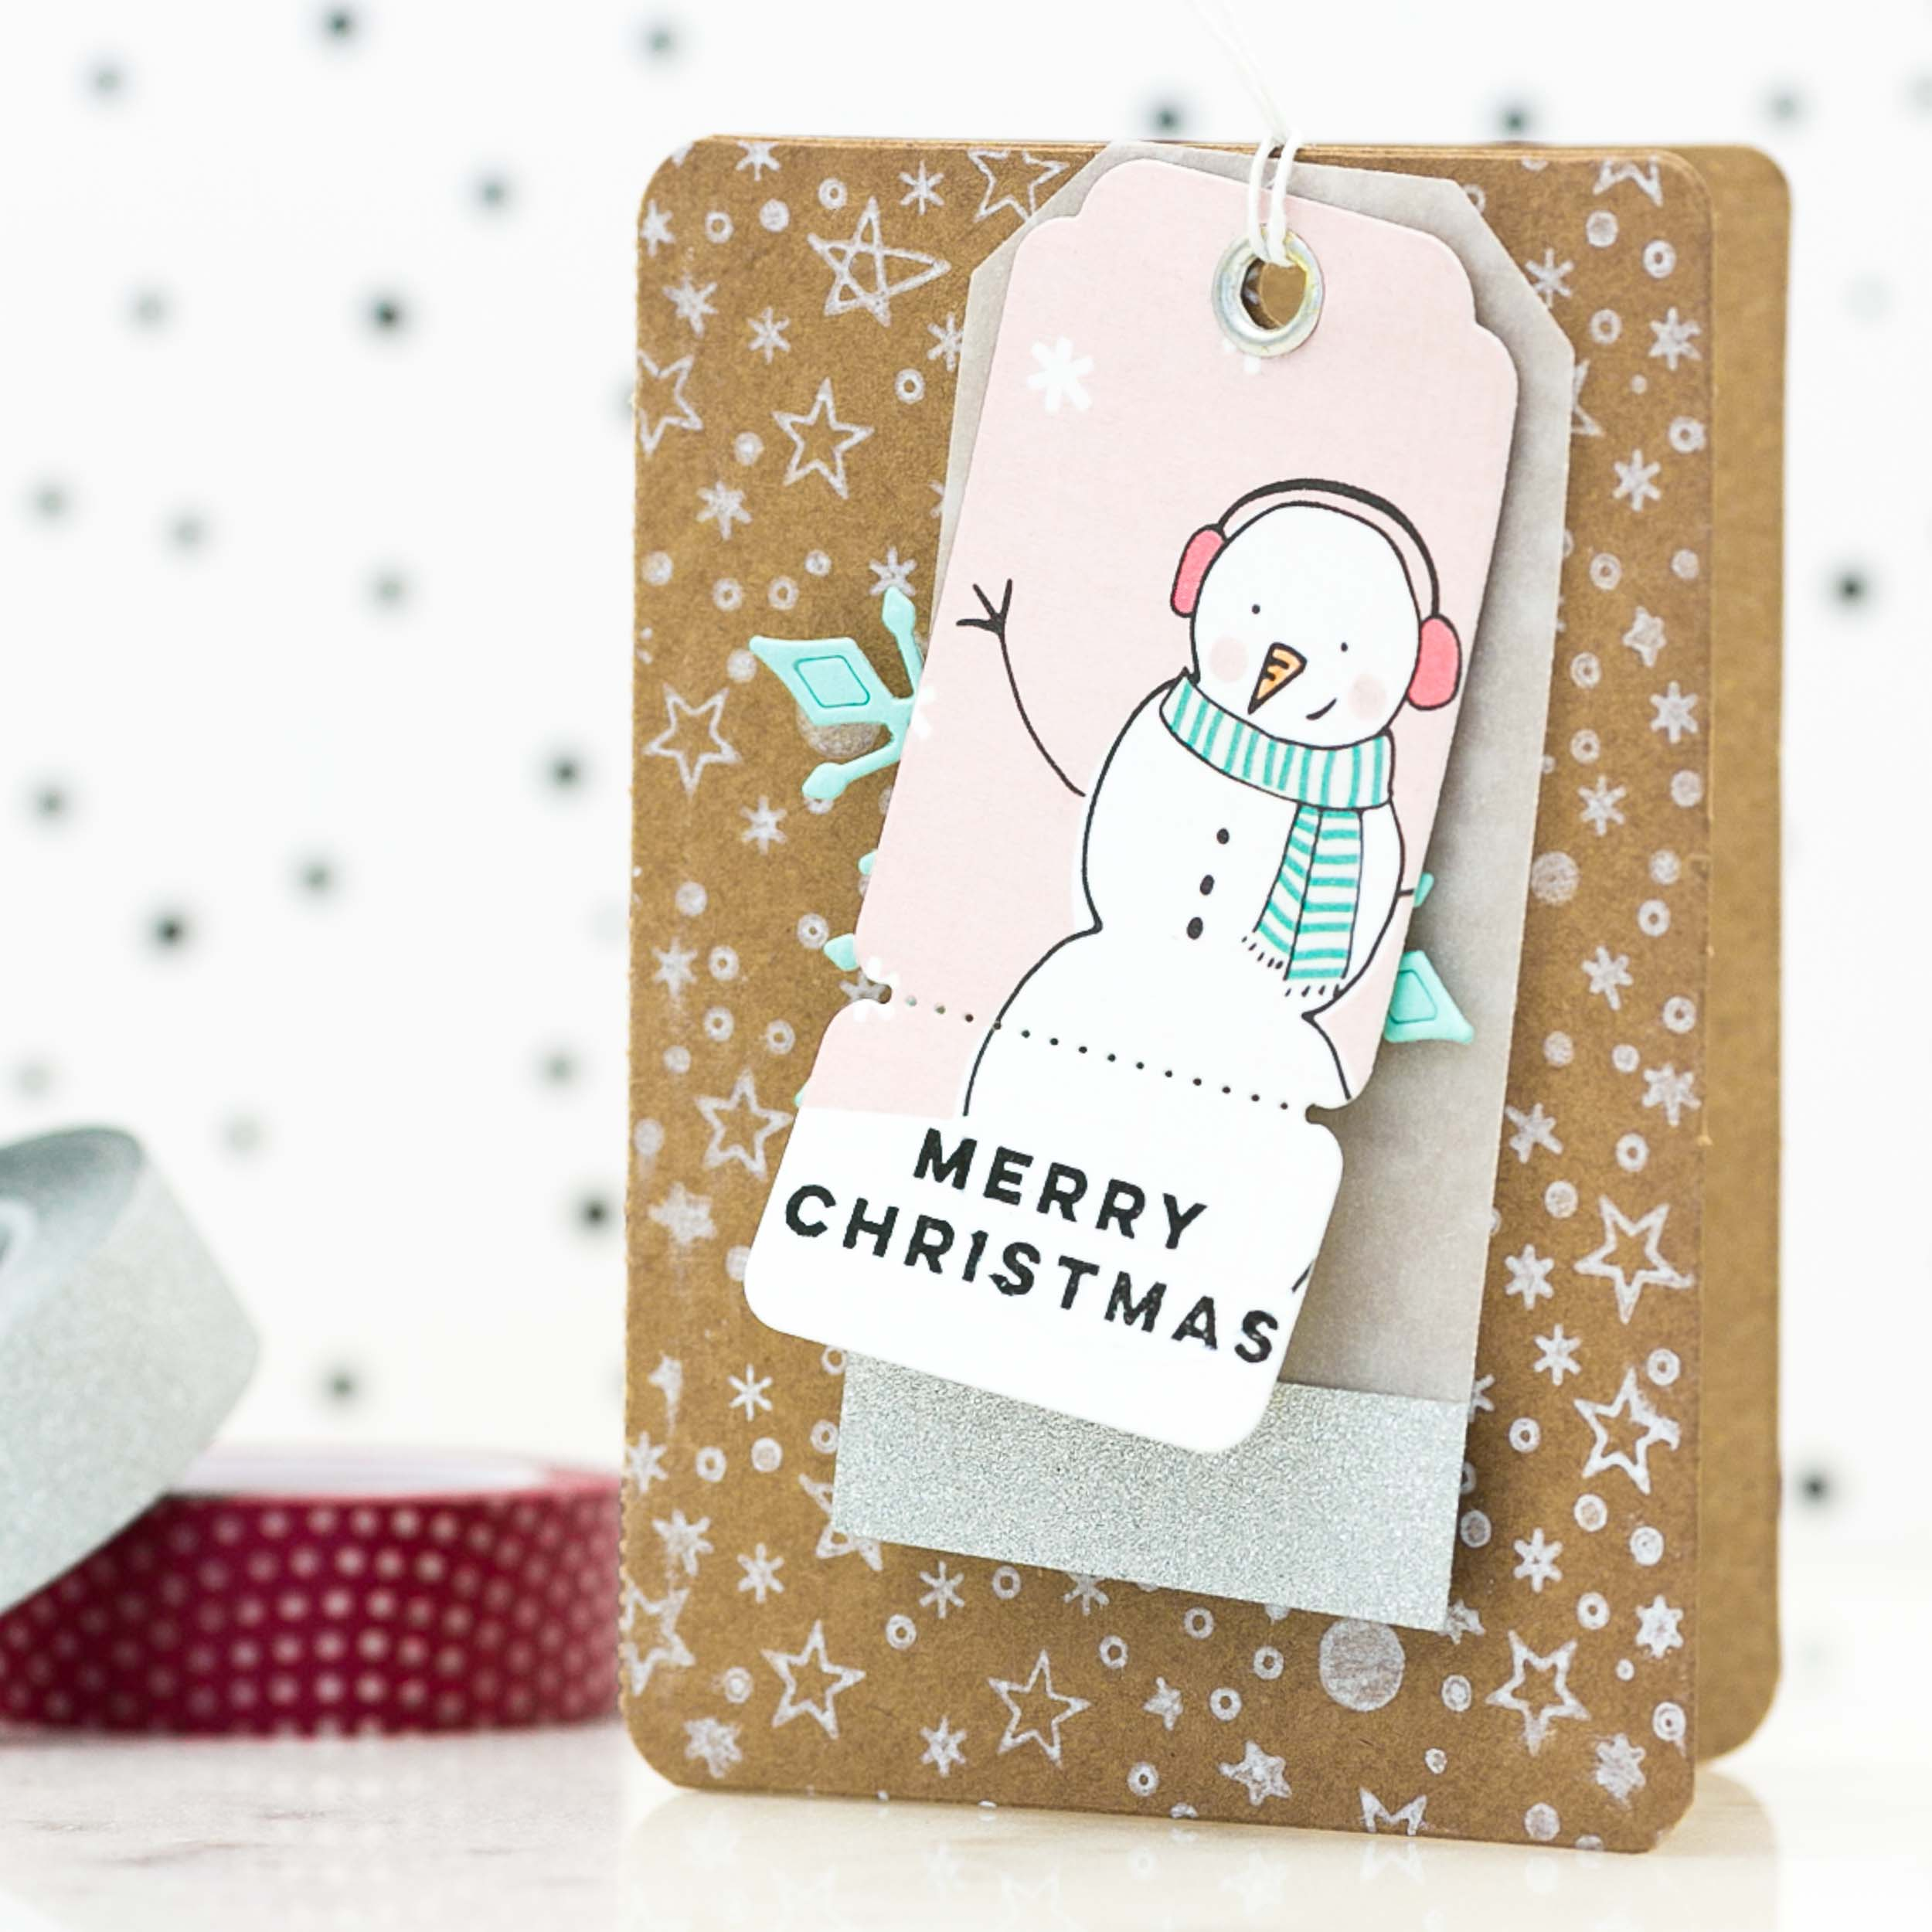 Christmas Gift Enclosure Card by @pixnglue